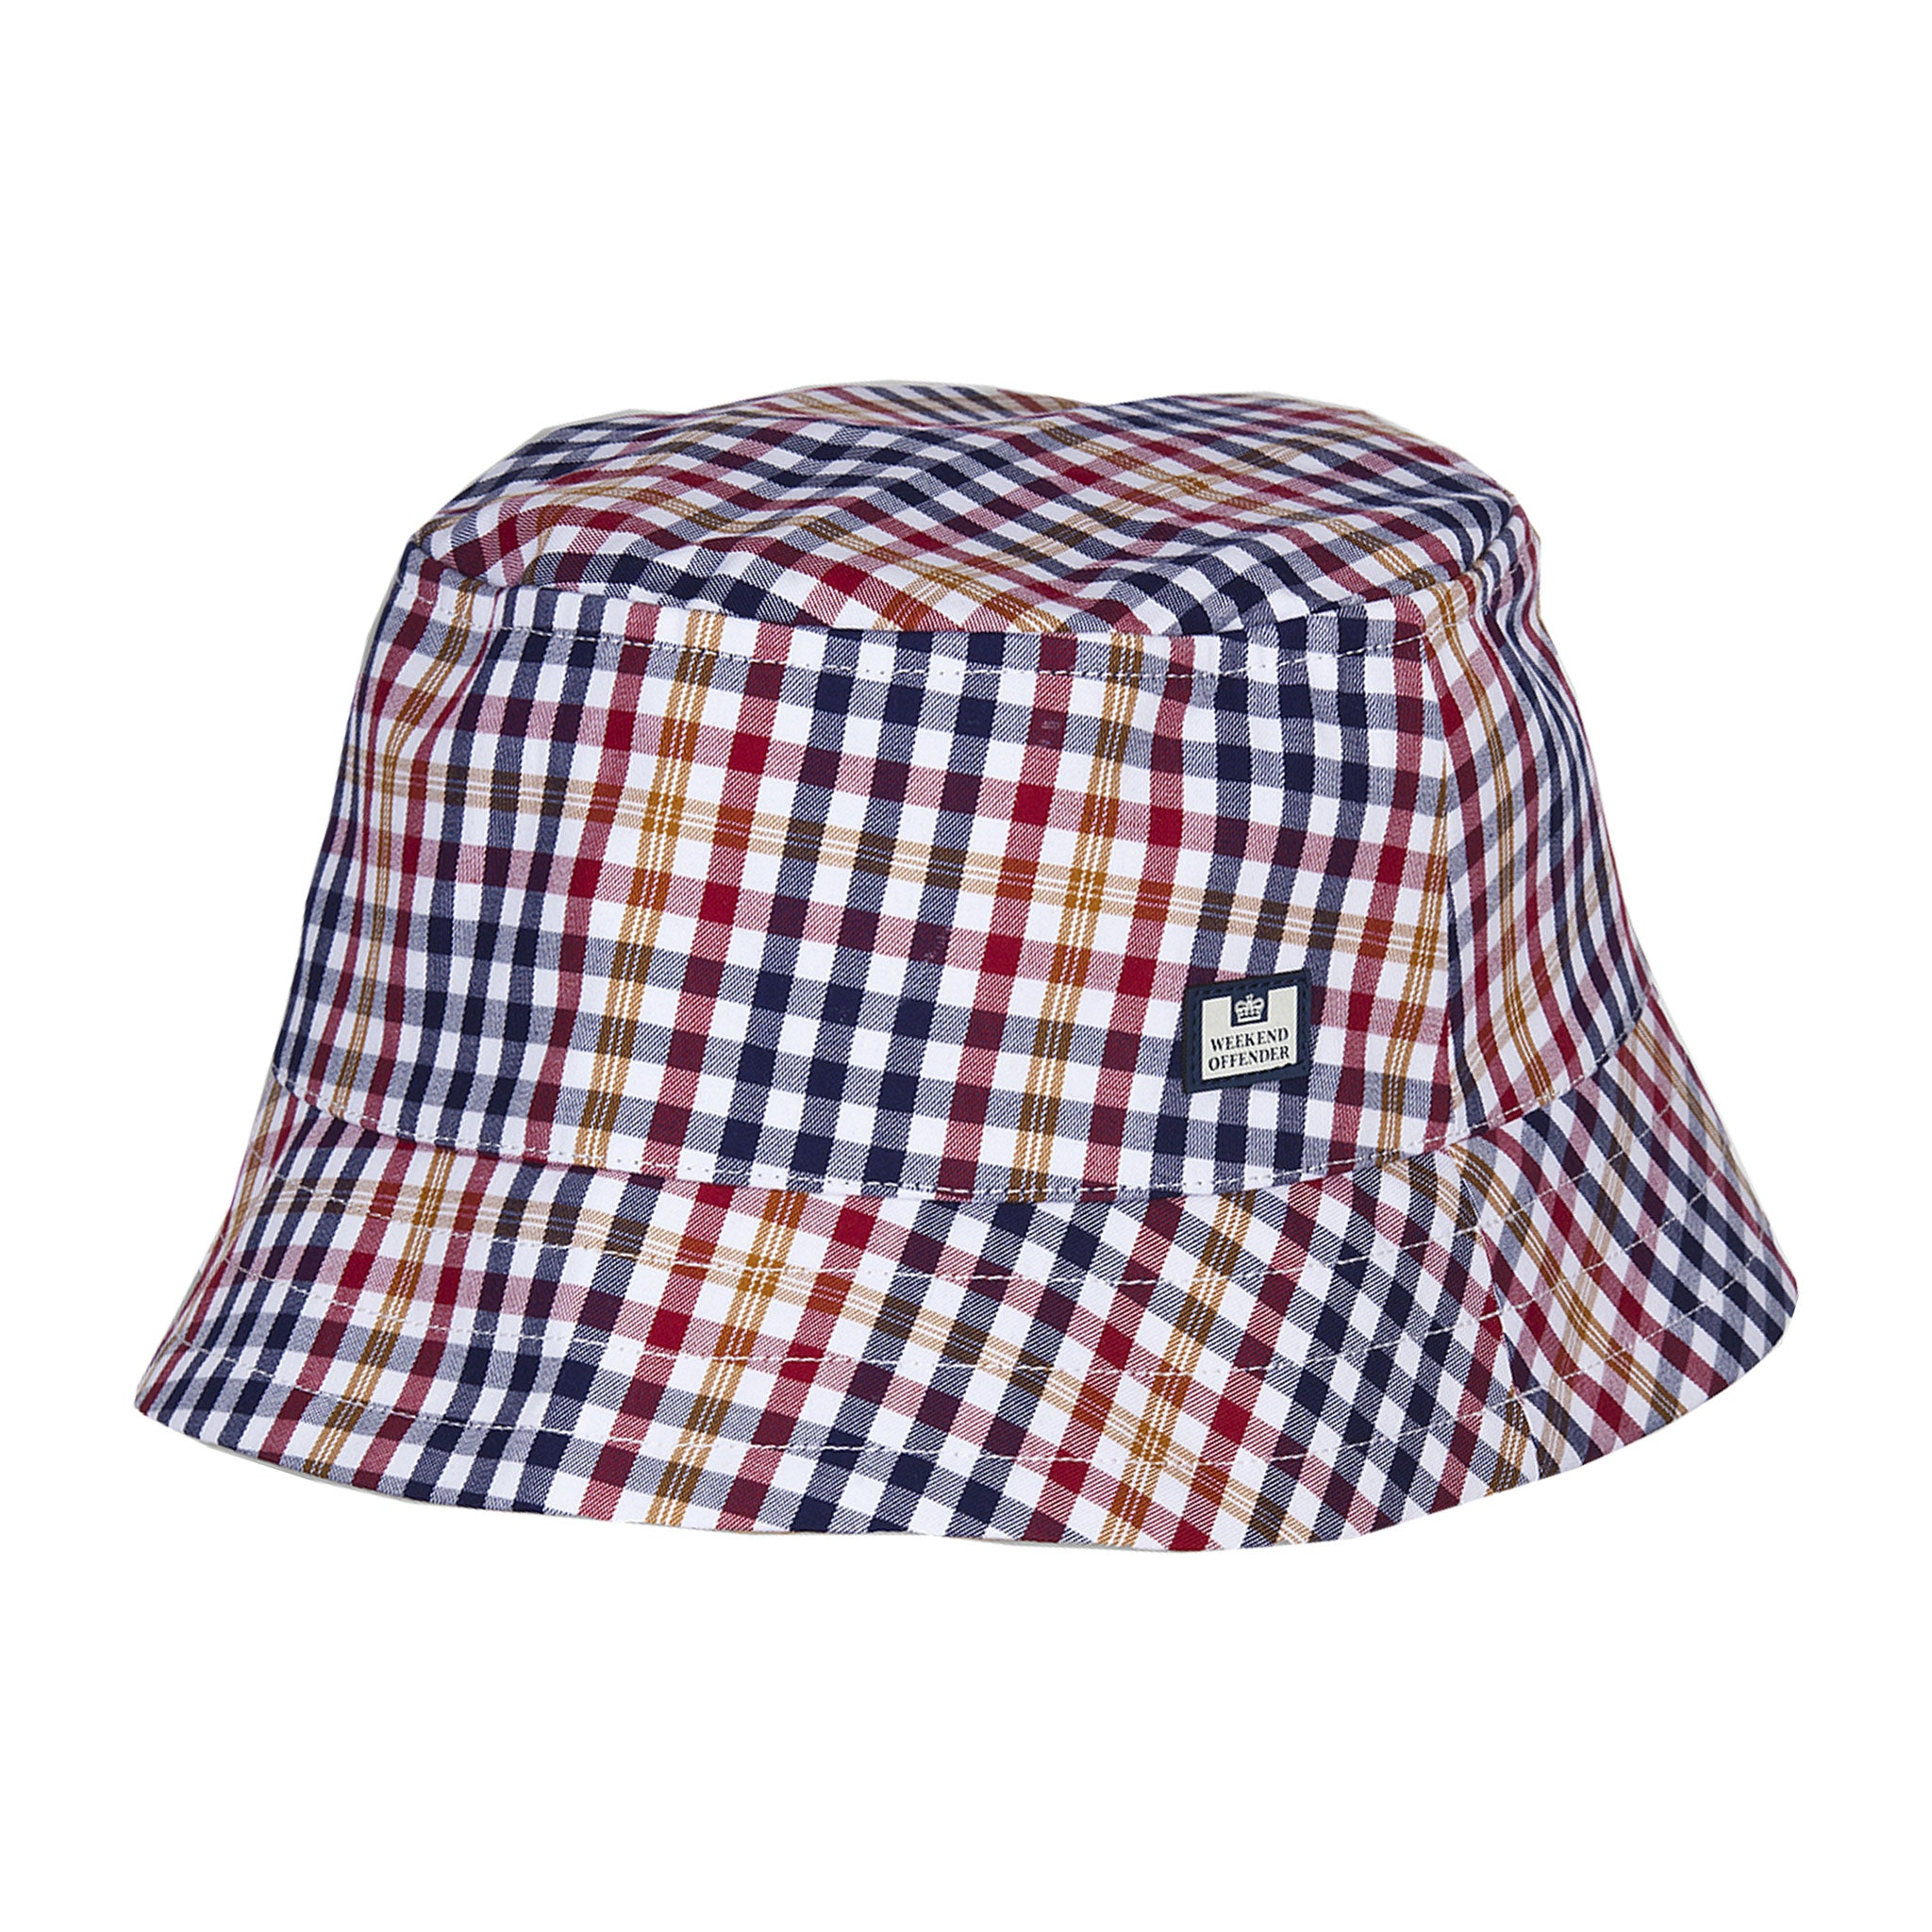 Nelson Check Bucket Hat